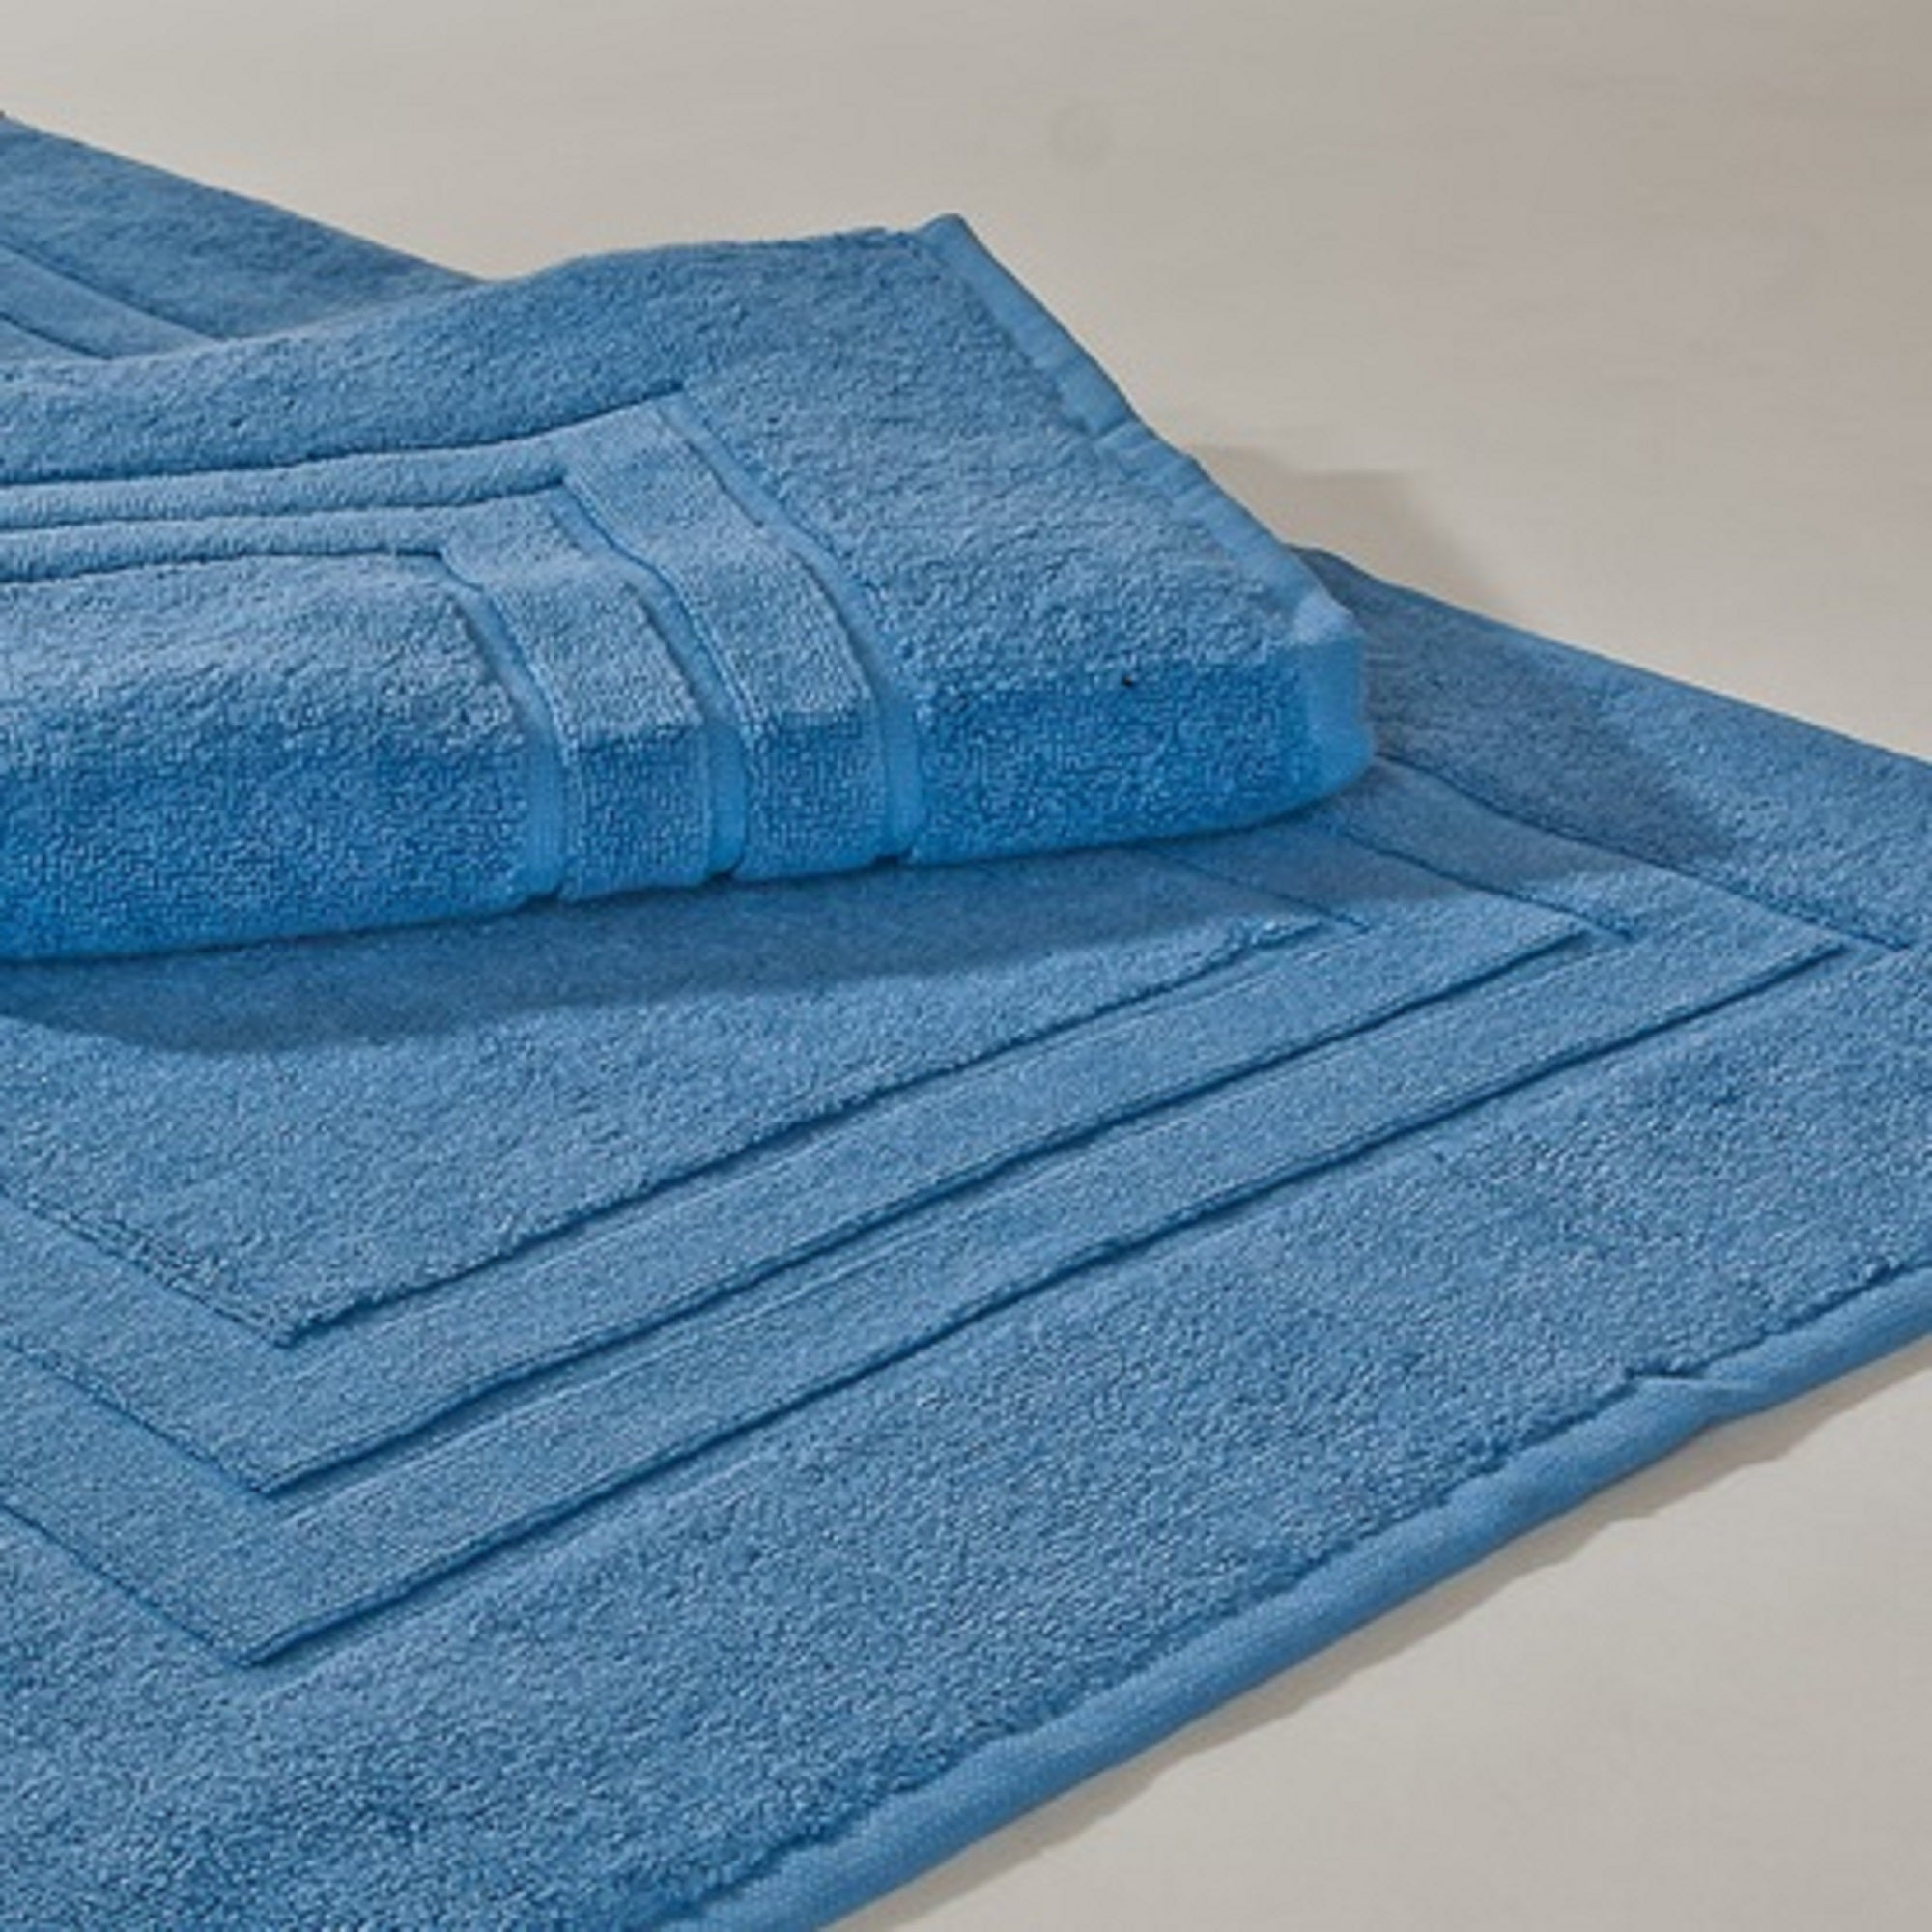 Homestead Textiles 900 GSM Bath Mats (Set of 2) - Free Shipping On ...